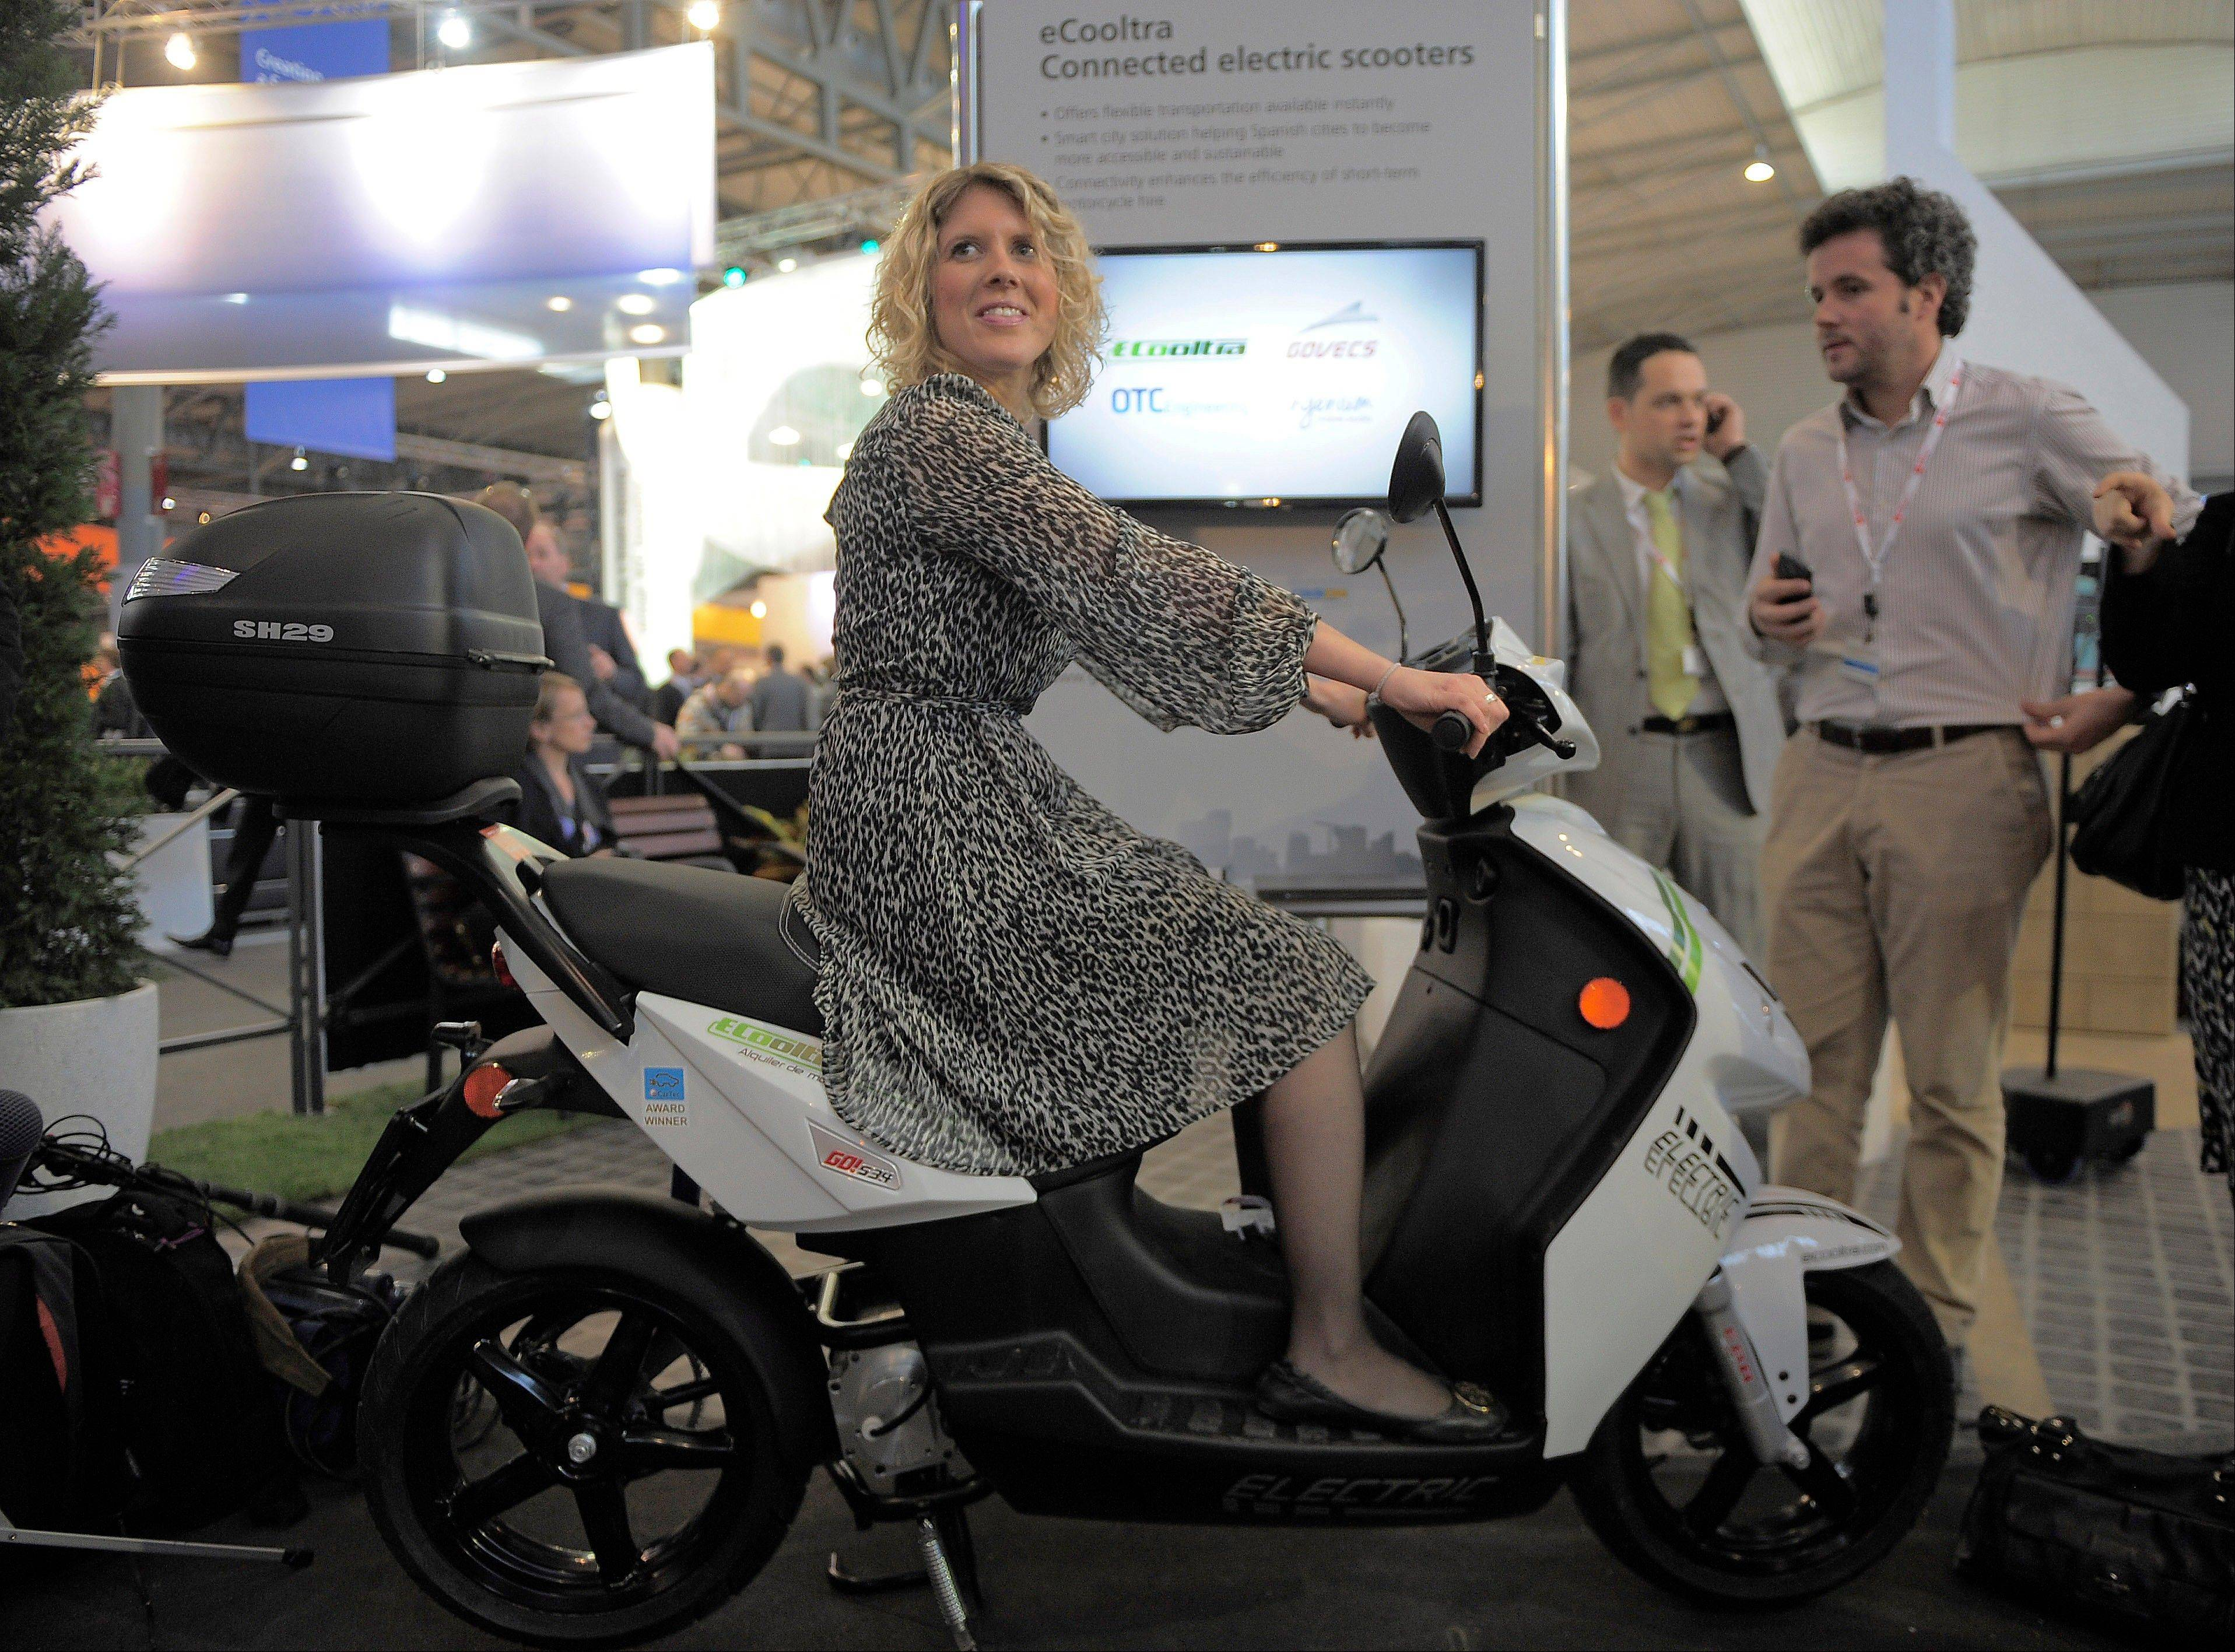 A woman sits on an eCooltra Connected electric scooters Tuesday at the Mobile World Congress, the world's largest mobile phone trade show, in Barcelona, Spain.